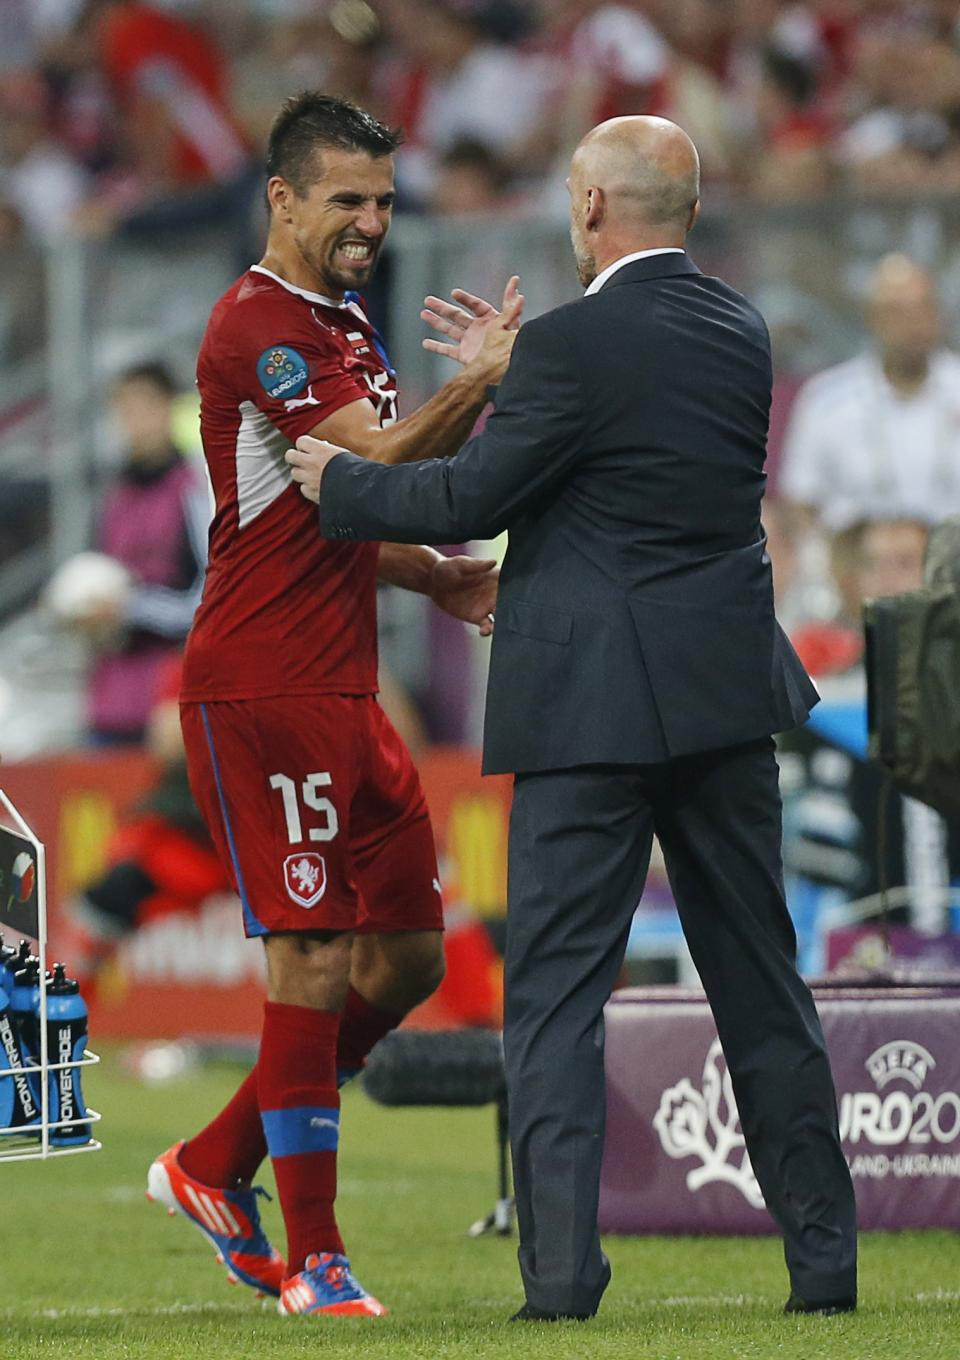 Czech Republic's Milan Baros shakes hands with head coach Michal Bilek during the Euro 2012 soccer championship Group A match between Czech Republic and Poland in Wroclaw, Poland, Saturday, June 16, 2012. (AP Photo/Jon Super)